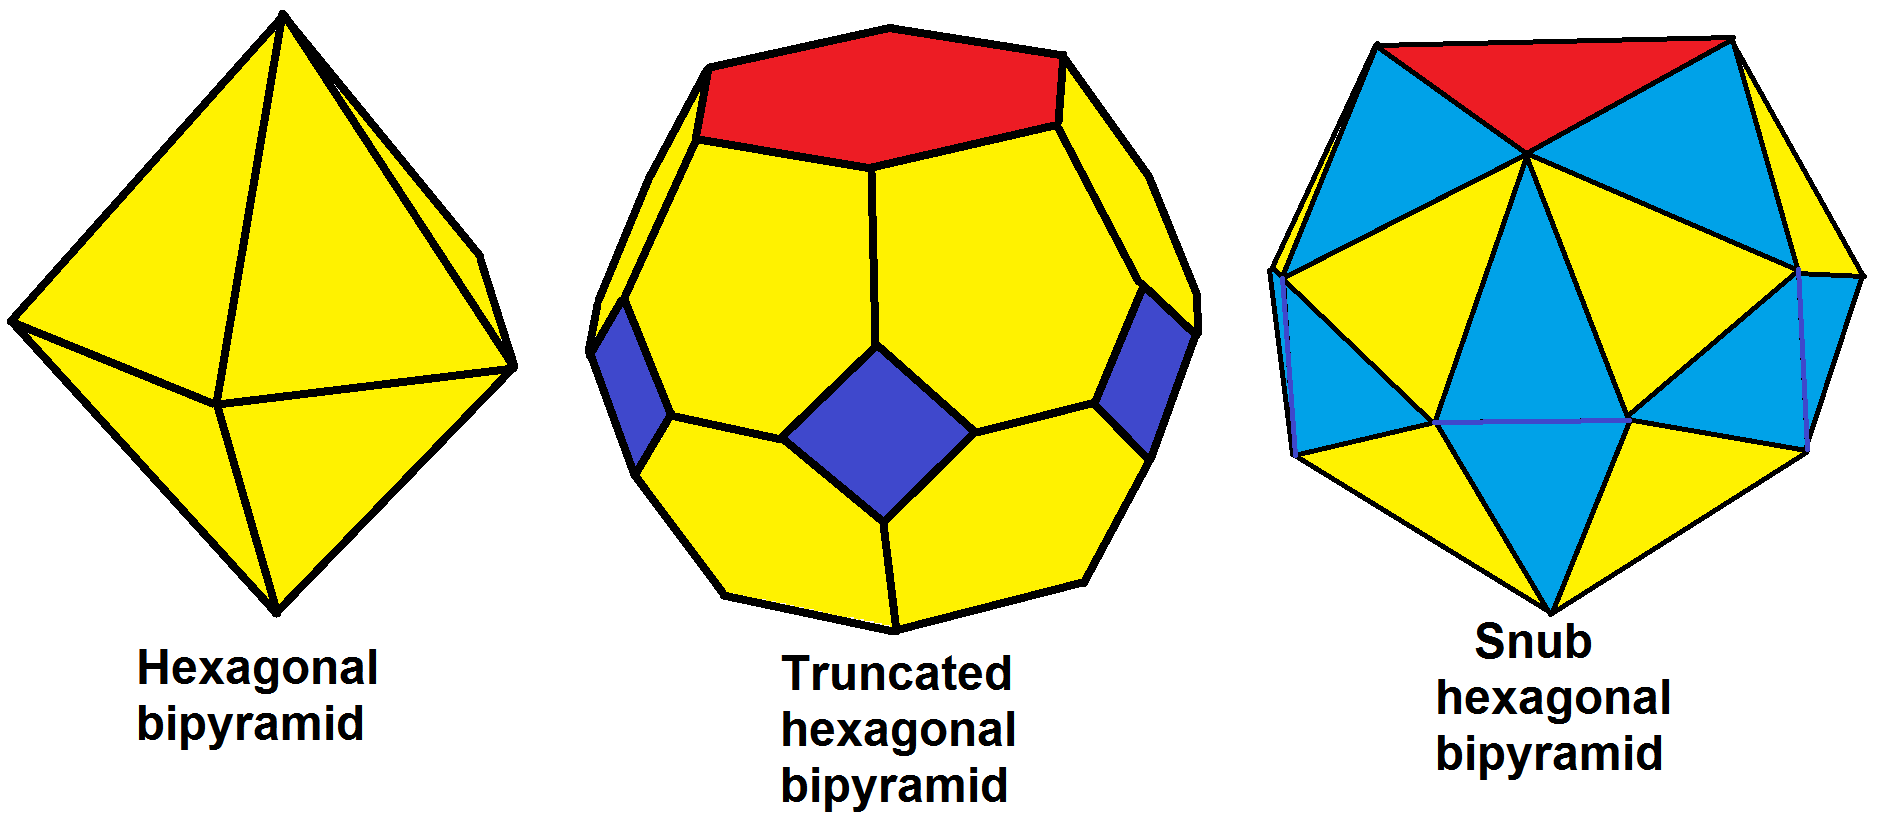 snub hexagonal bipyramid sequence.png